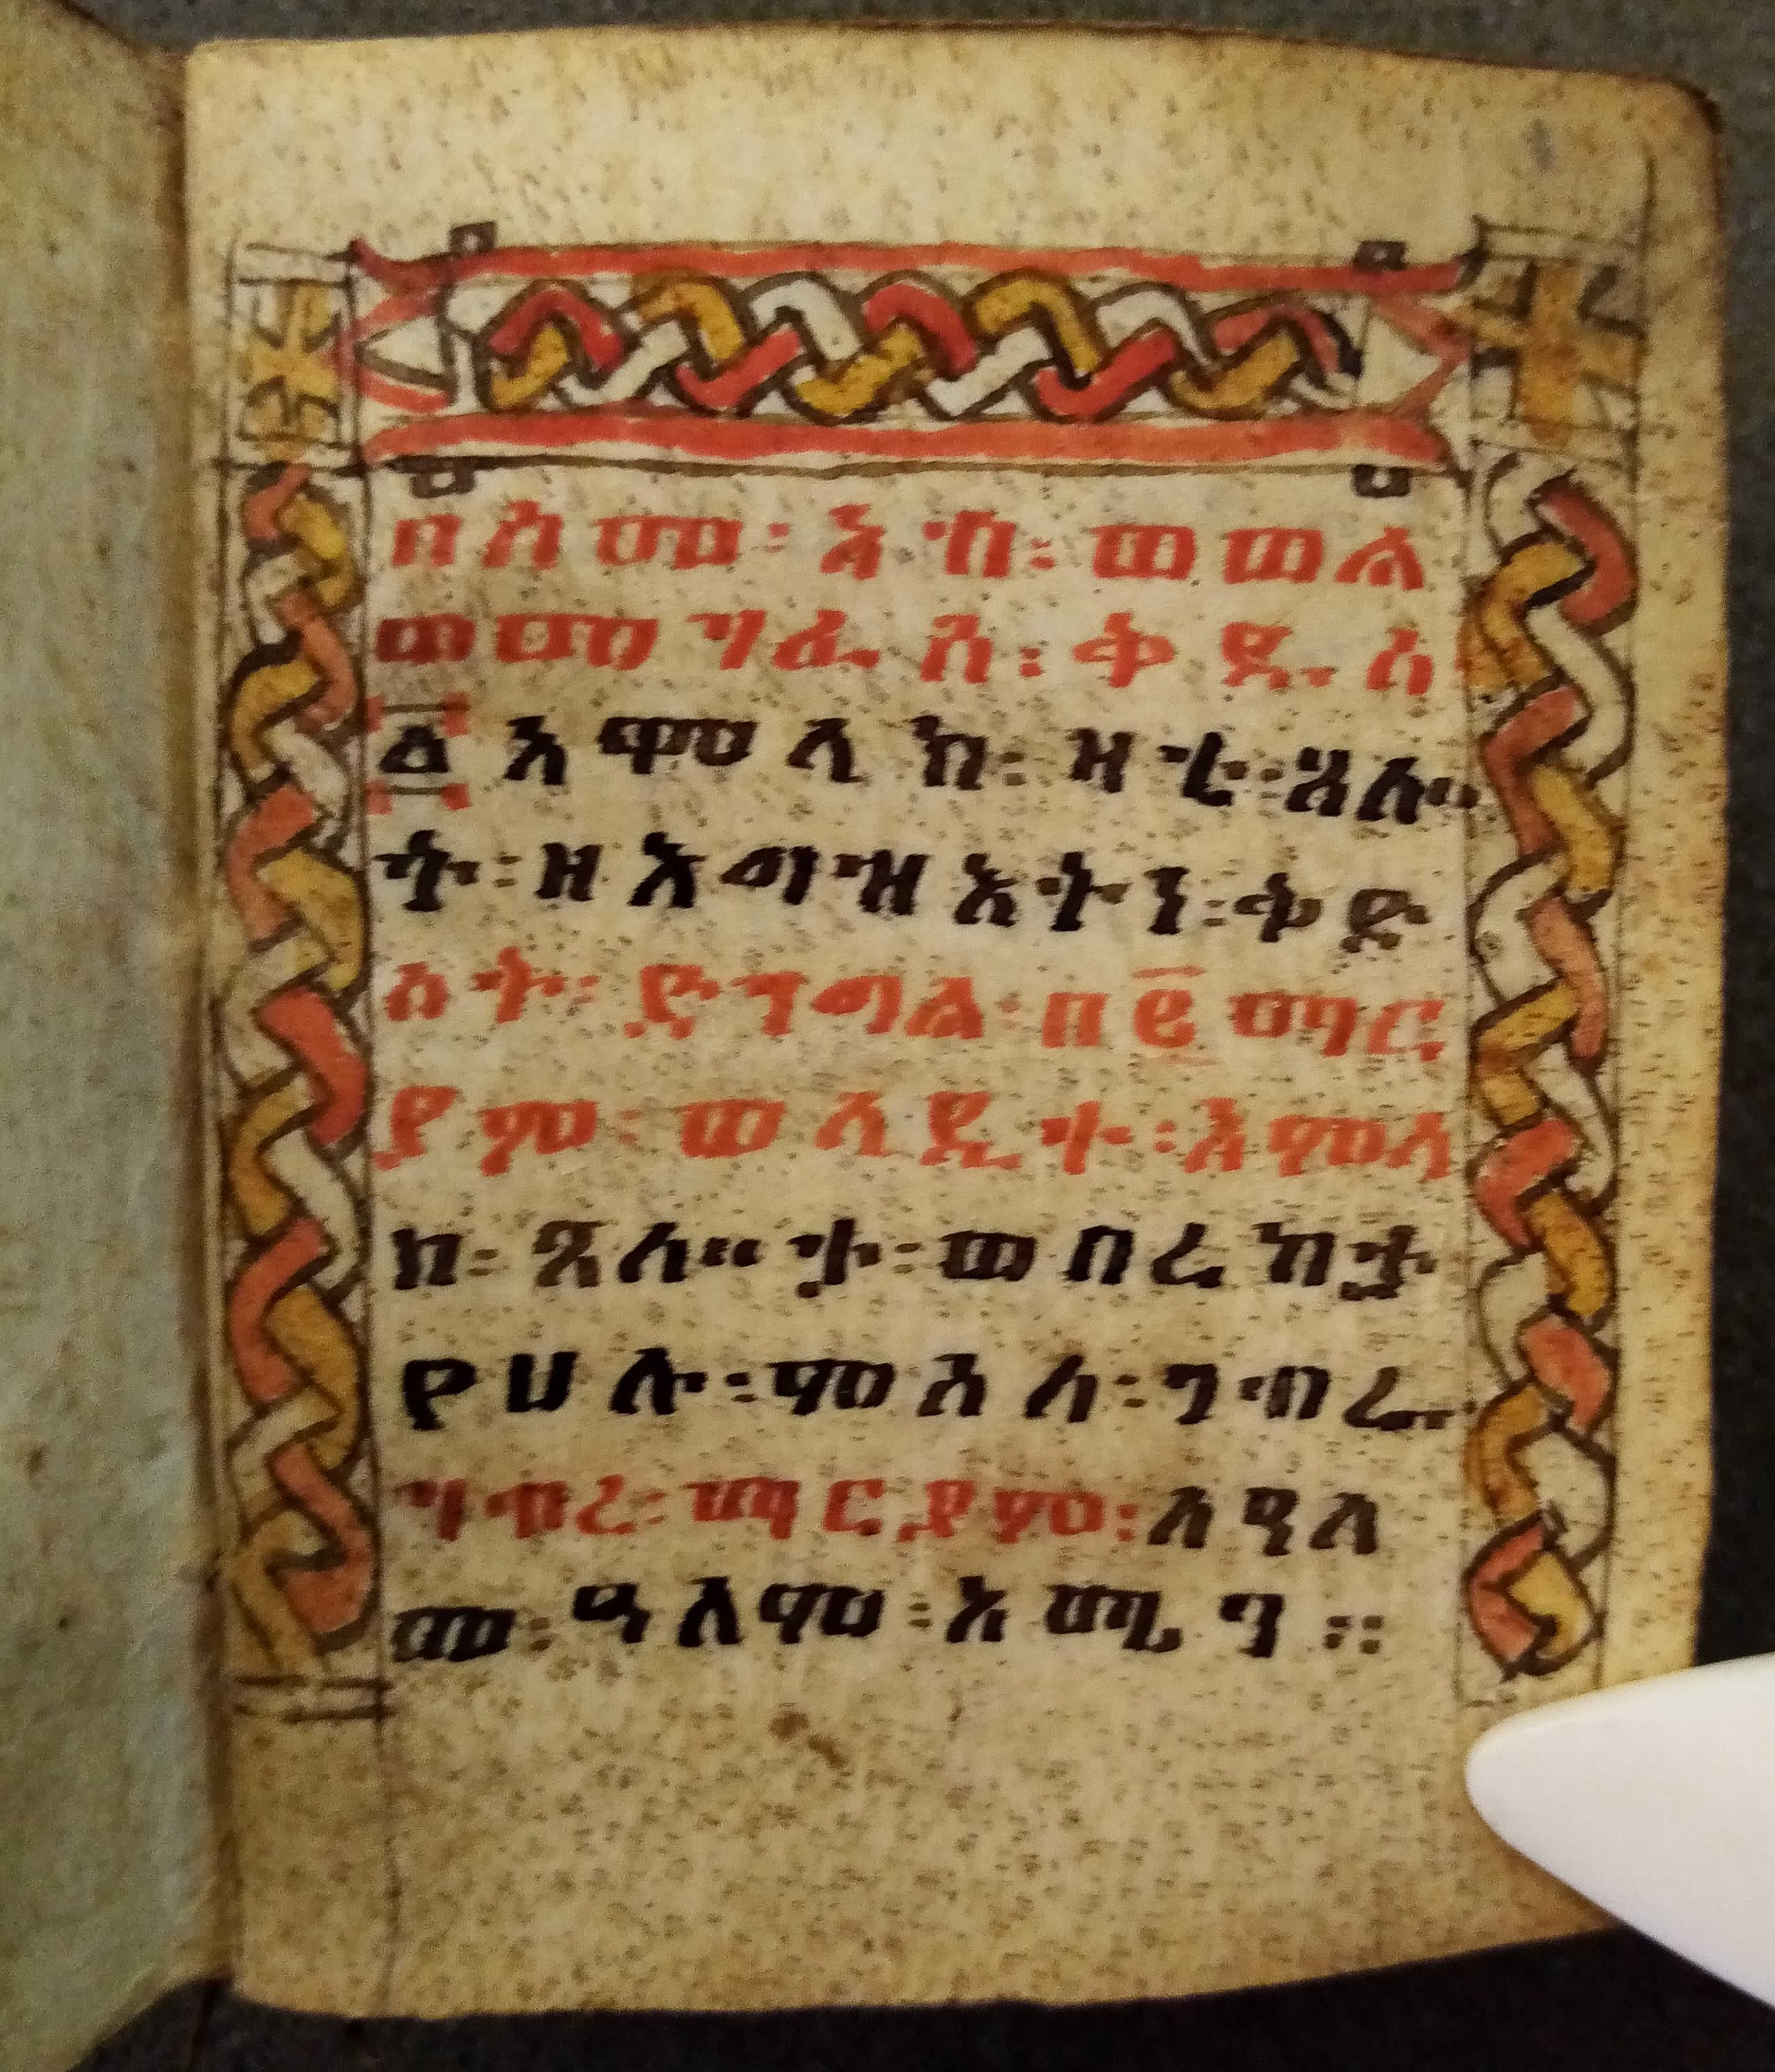 Manuscript 378 folio 1, showing Ge'ez text in red and black with yellow and red decorative edges